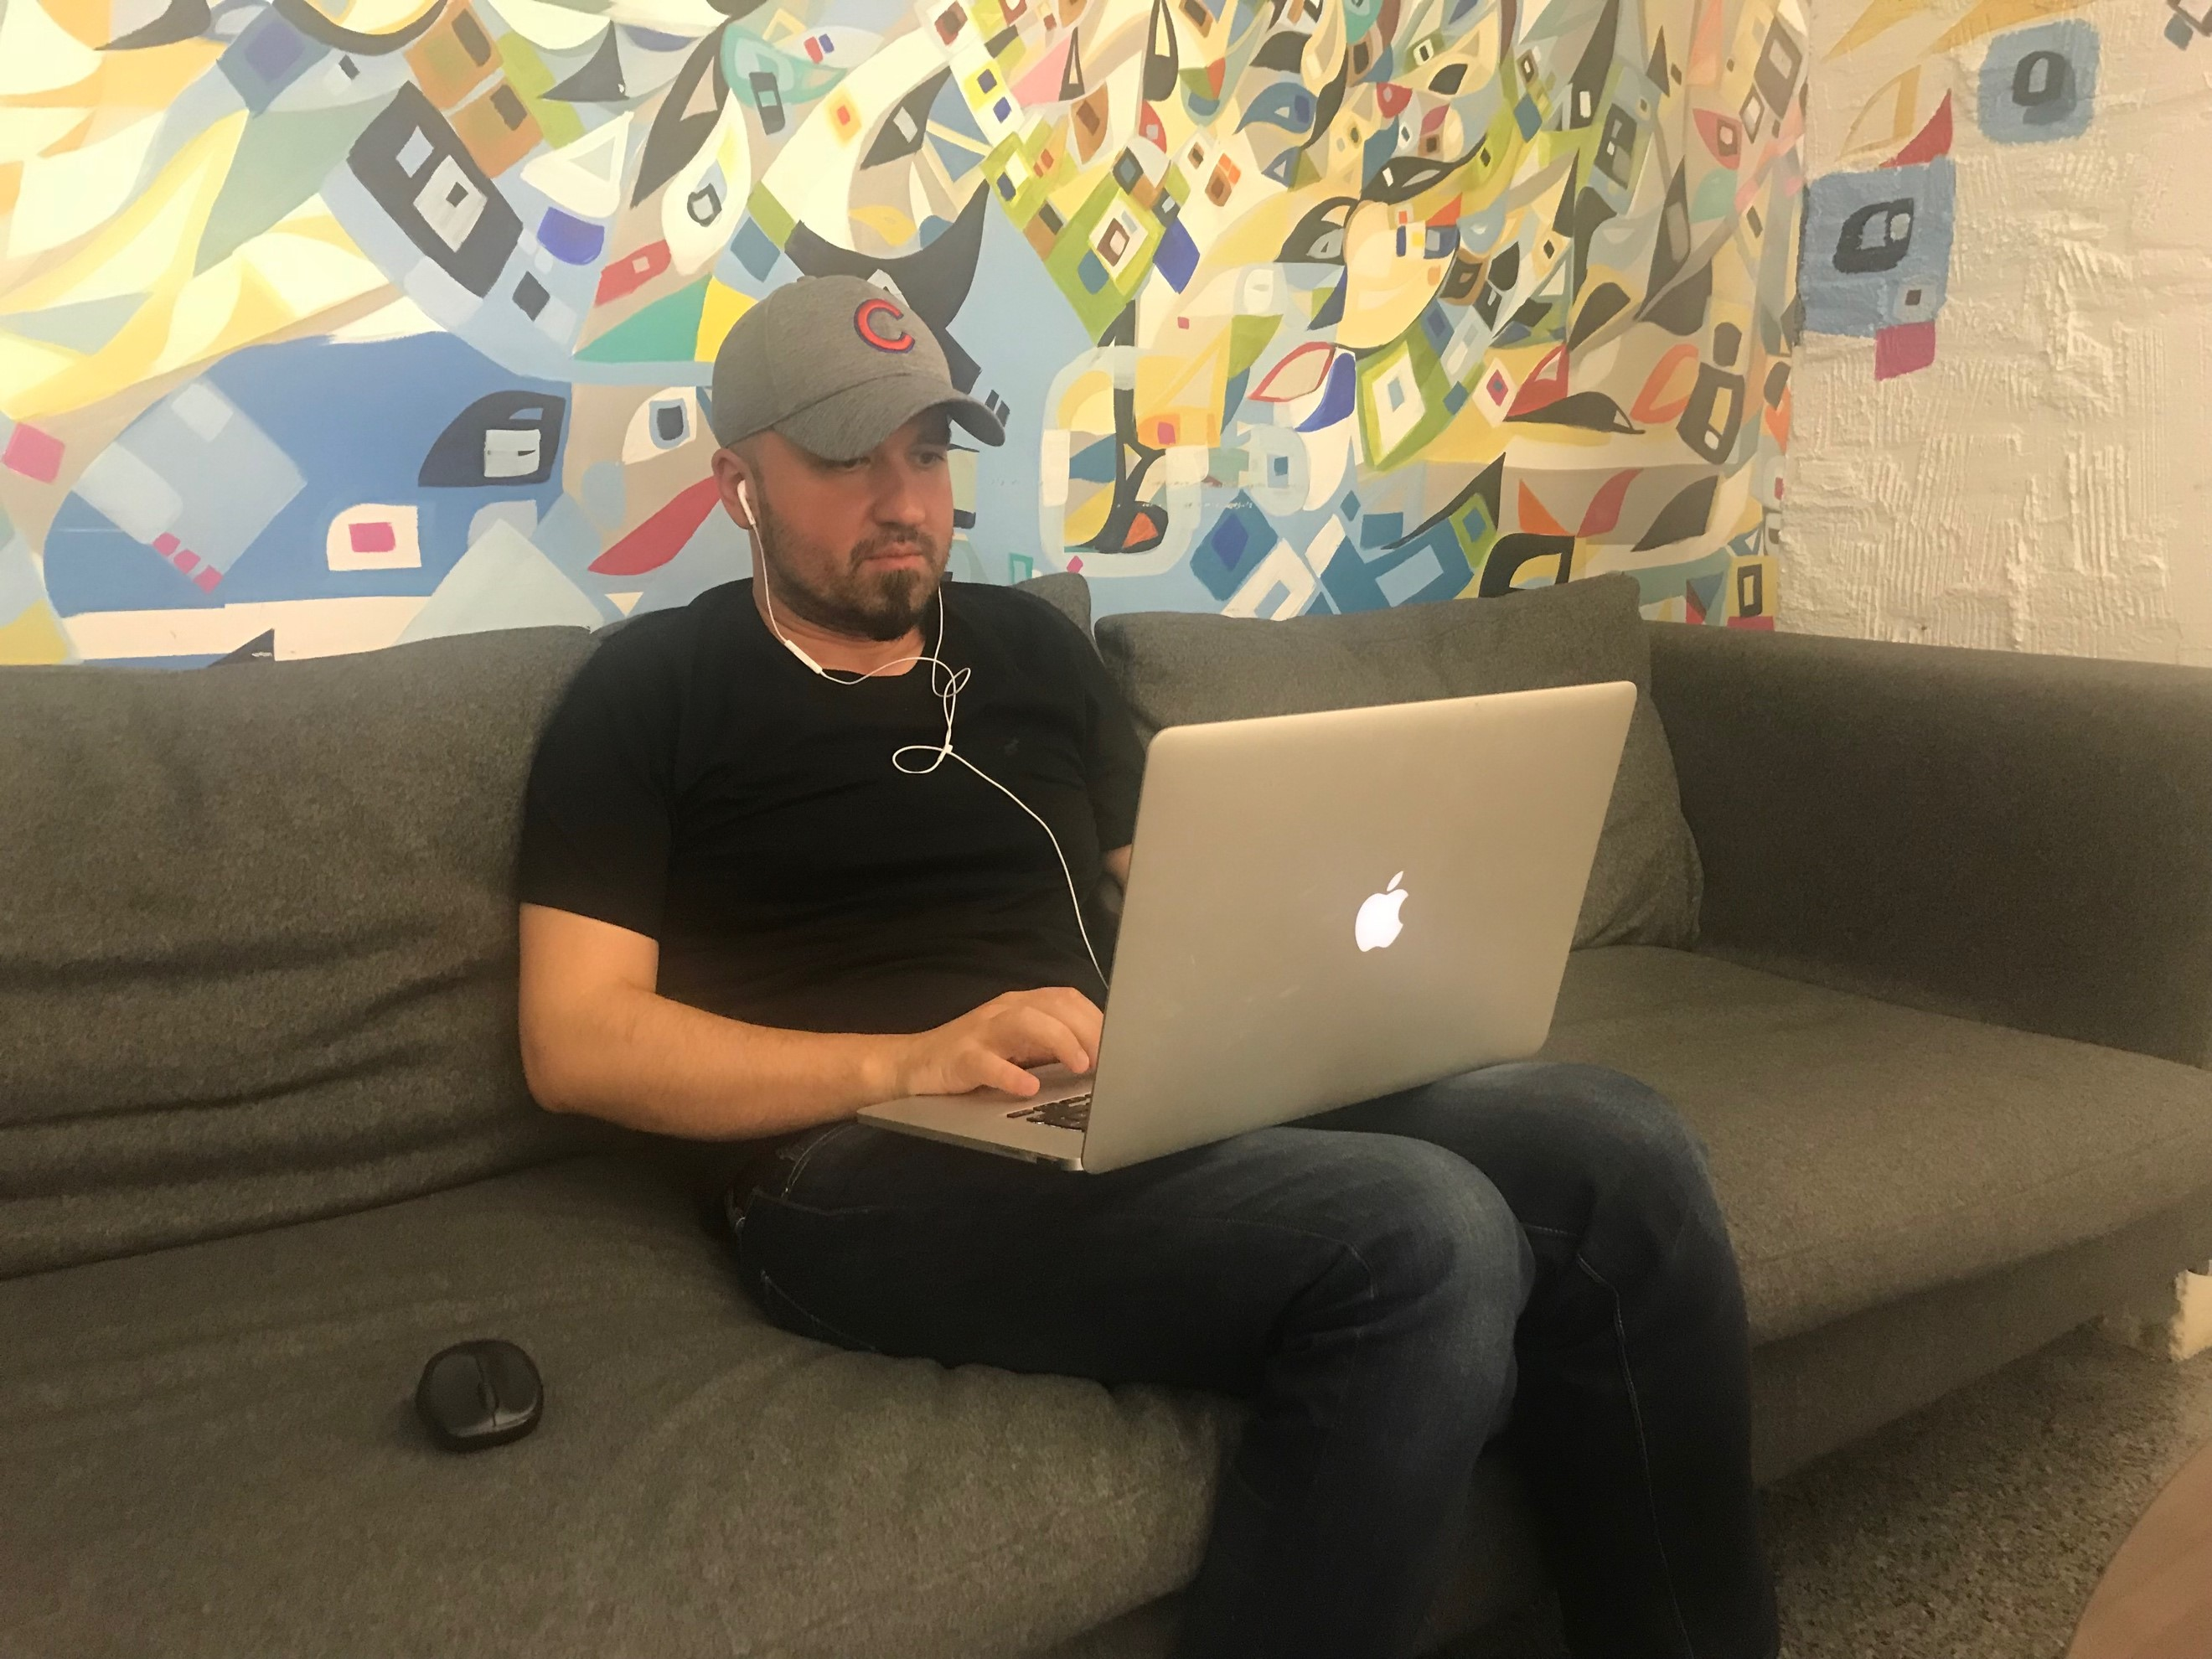 Me being very productive at 1871 Incubator shared space